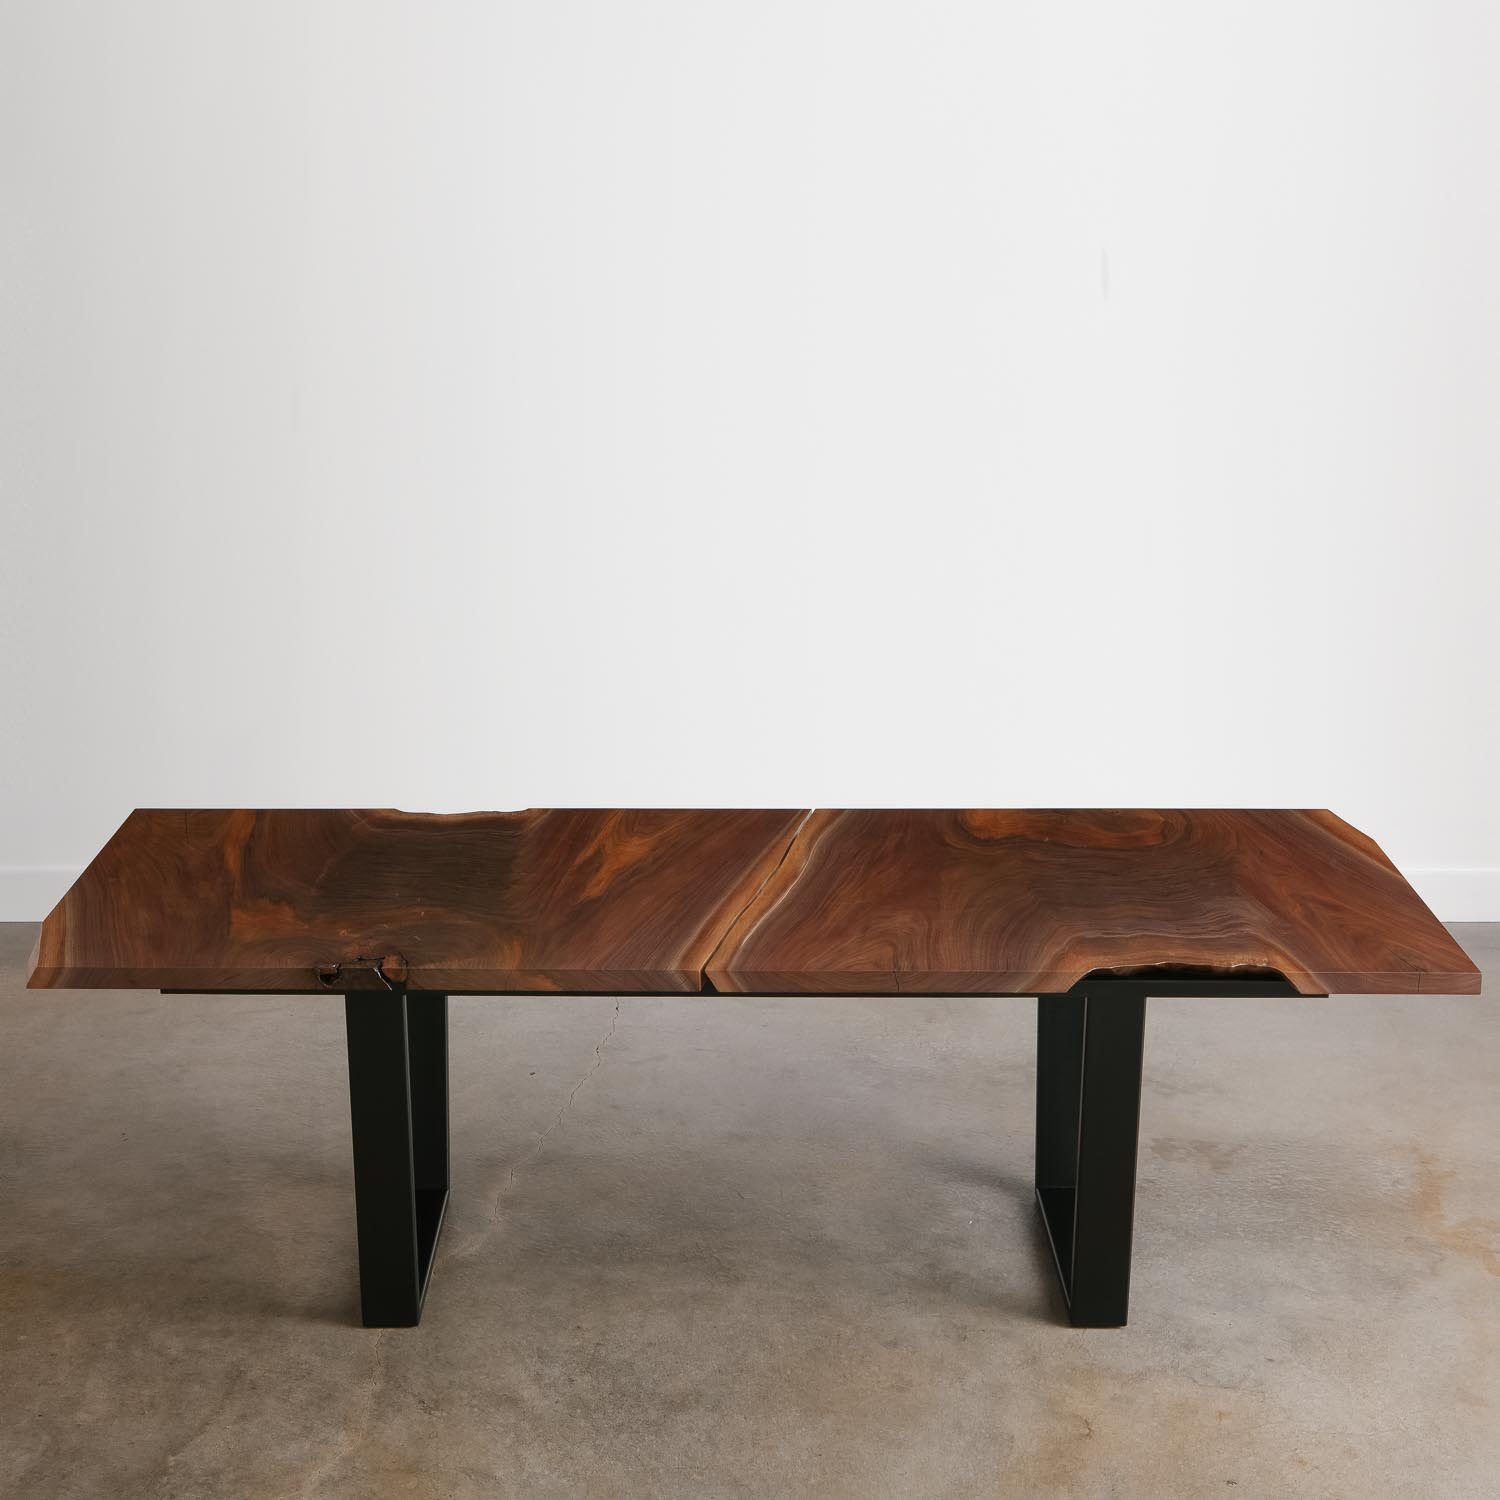 Live edge salvaged walnut table with steel legs